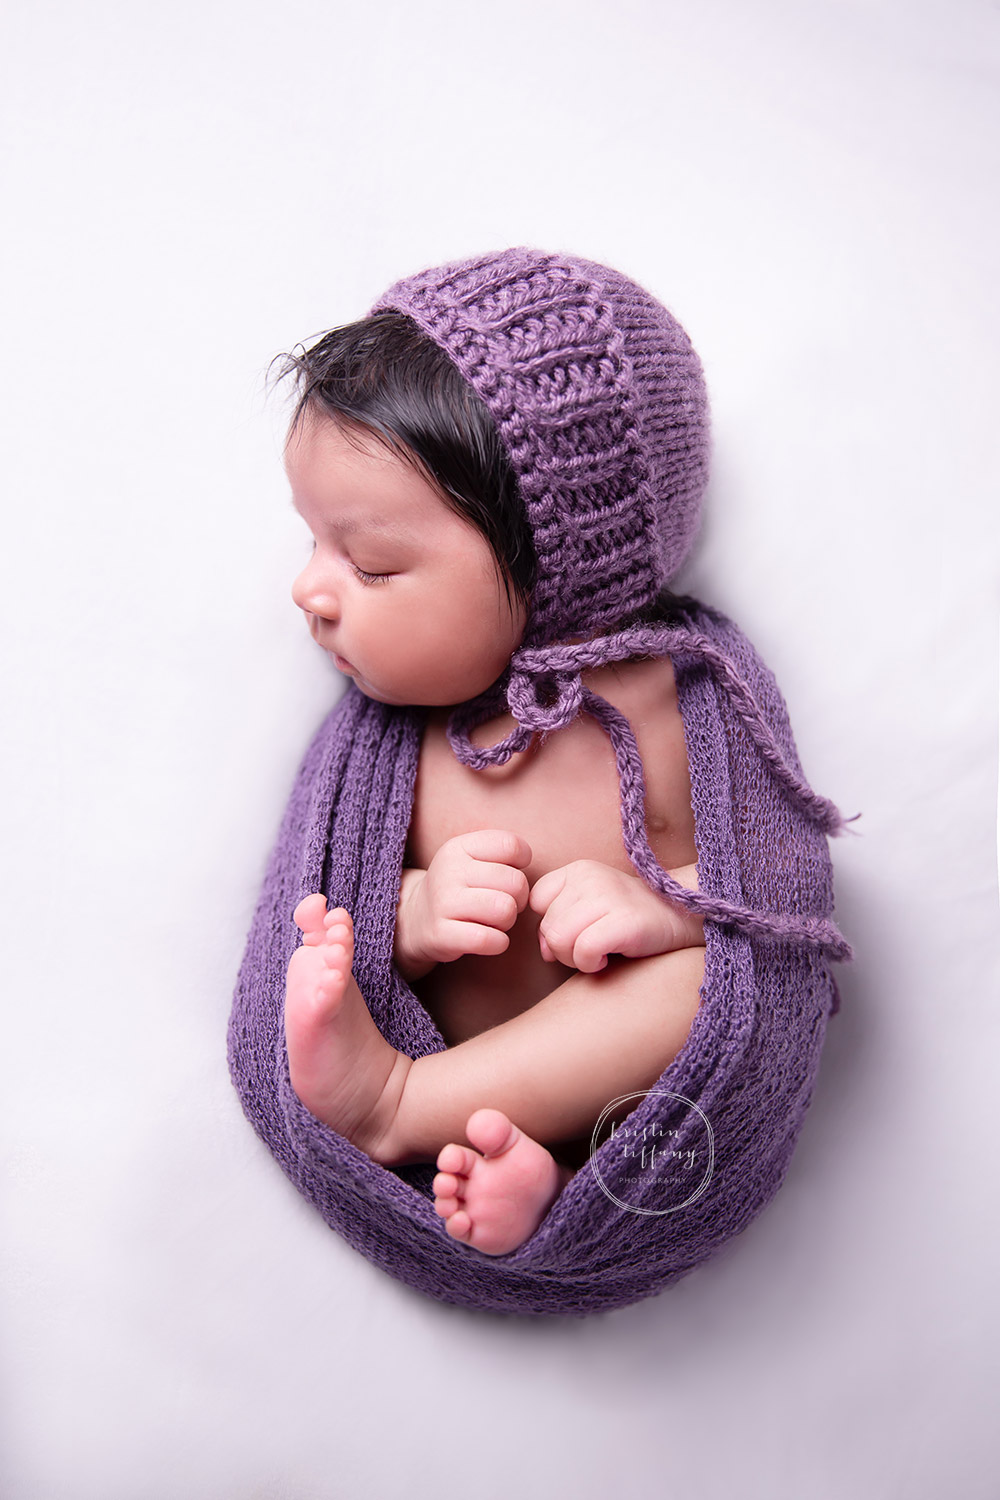 a newborn photo of a baby girl in purple